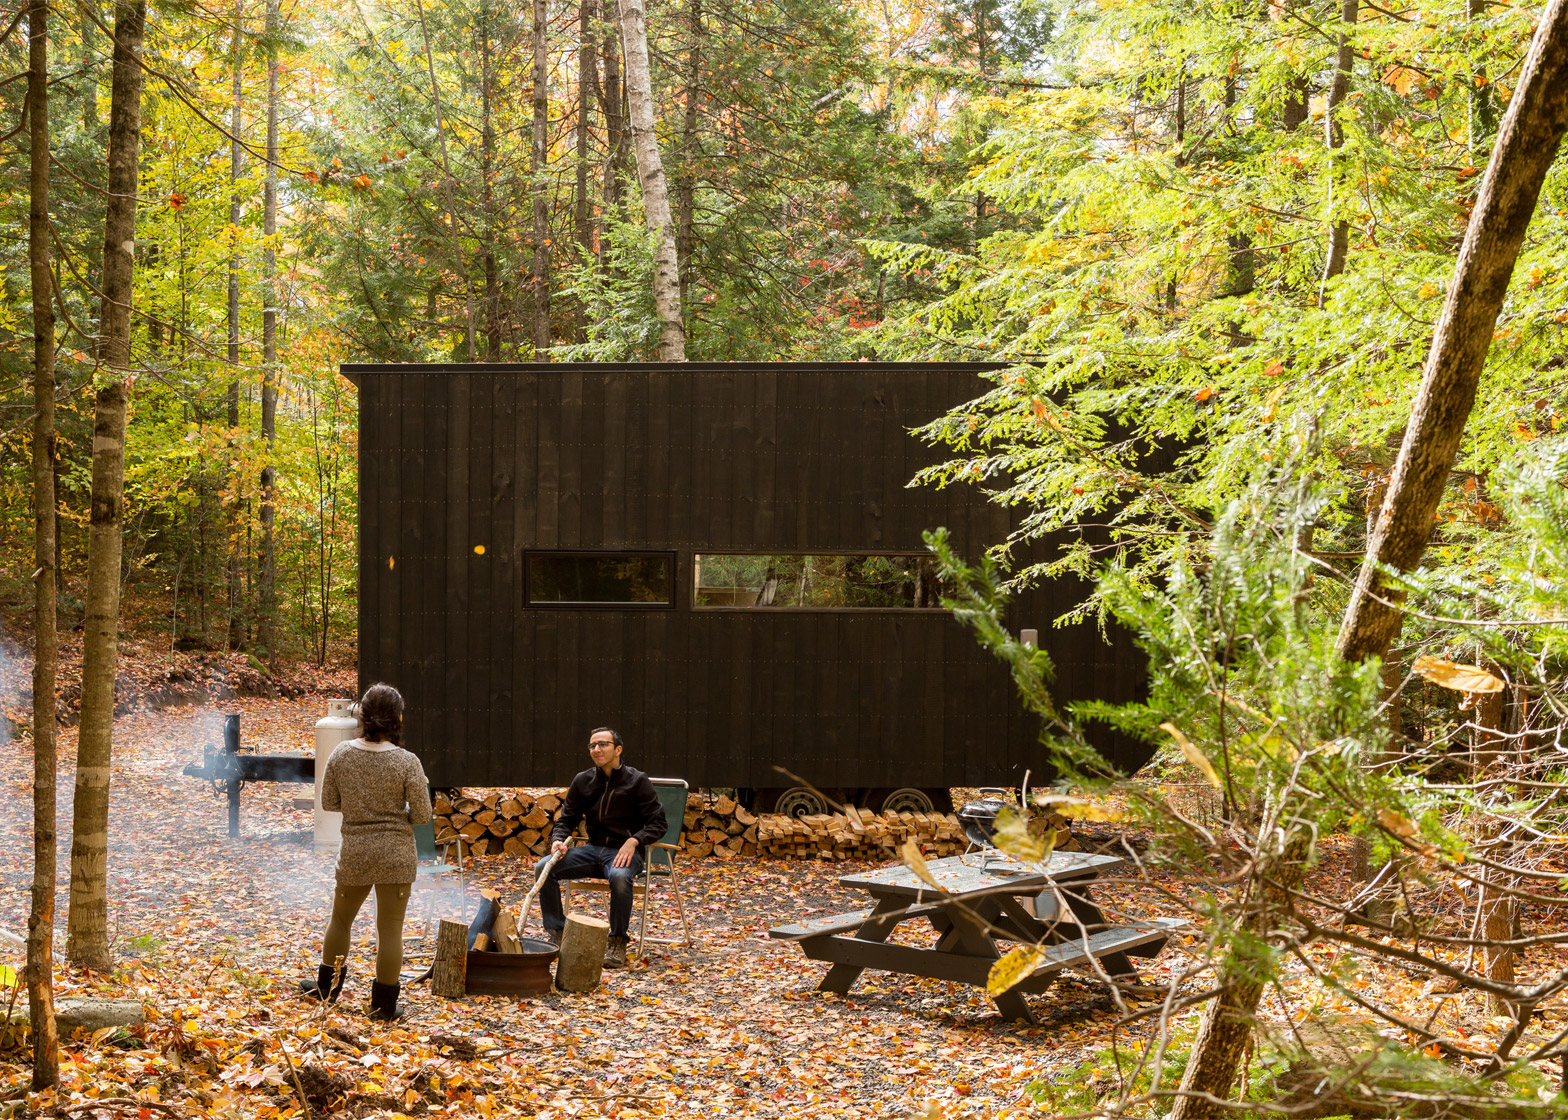 Getaway cabins by Harvard students, New York and Massachusetts